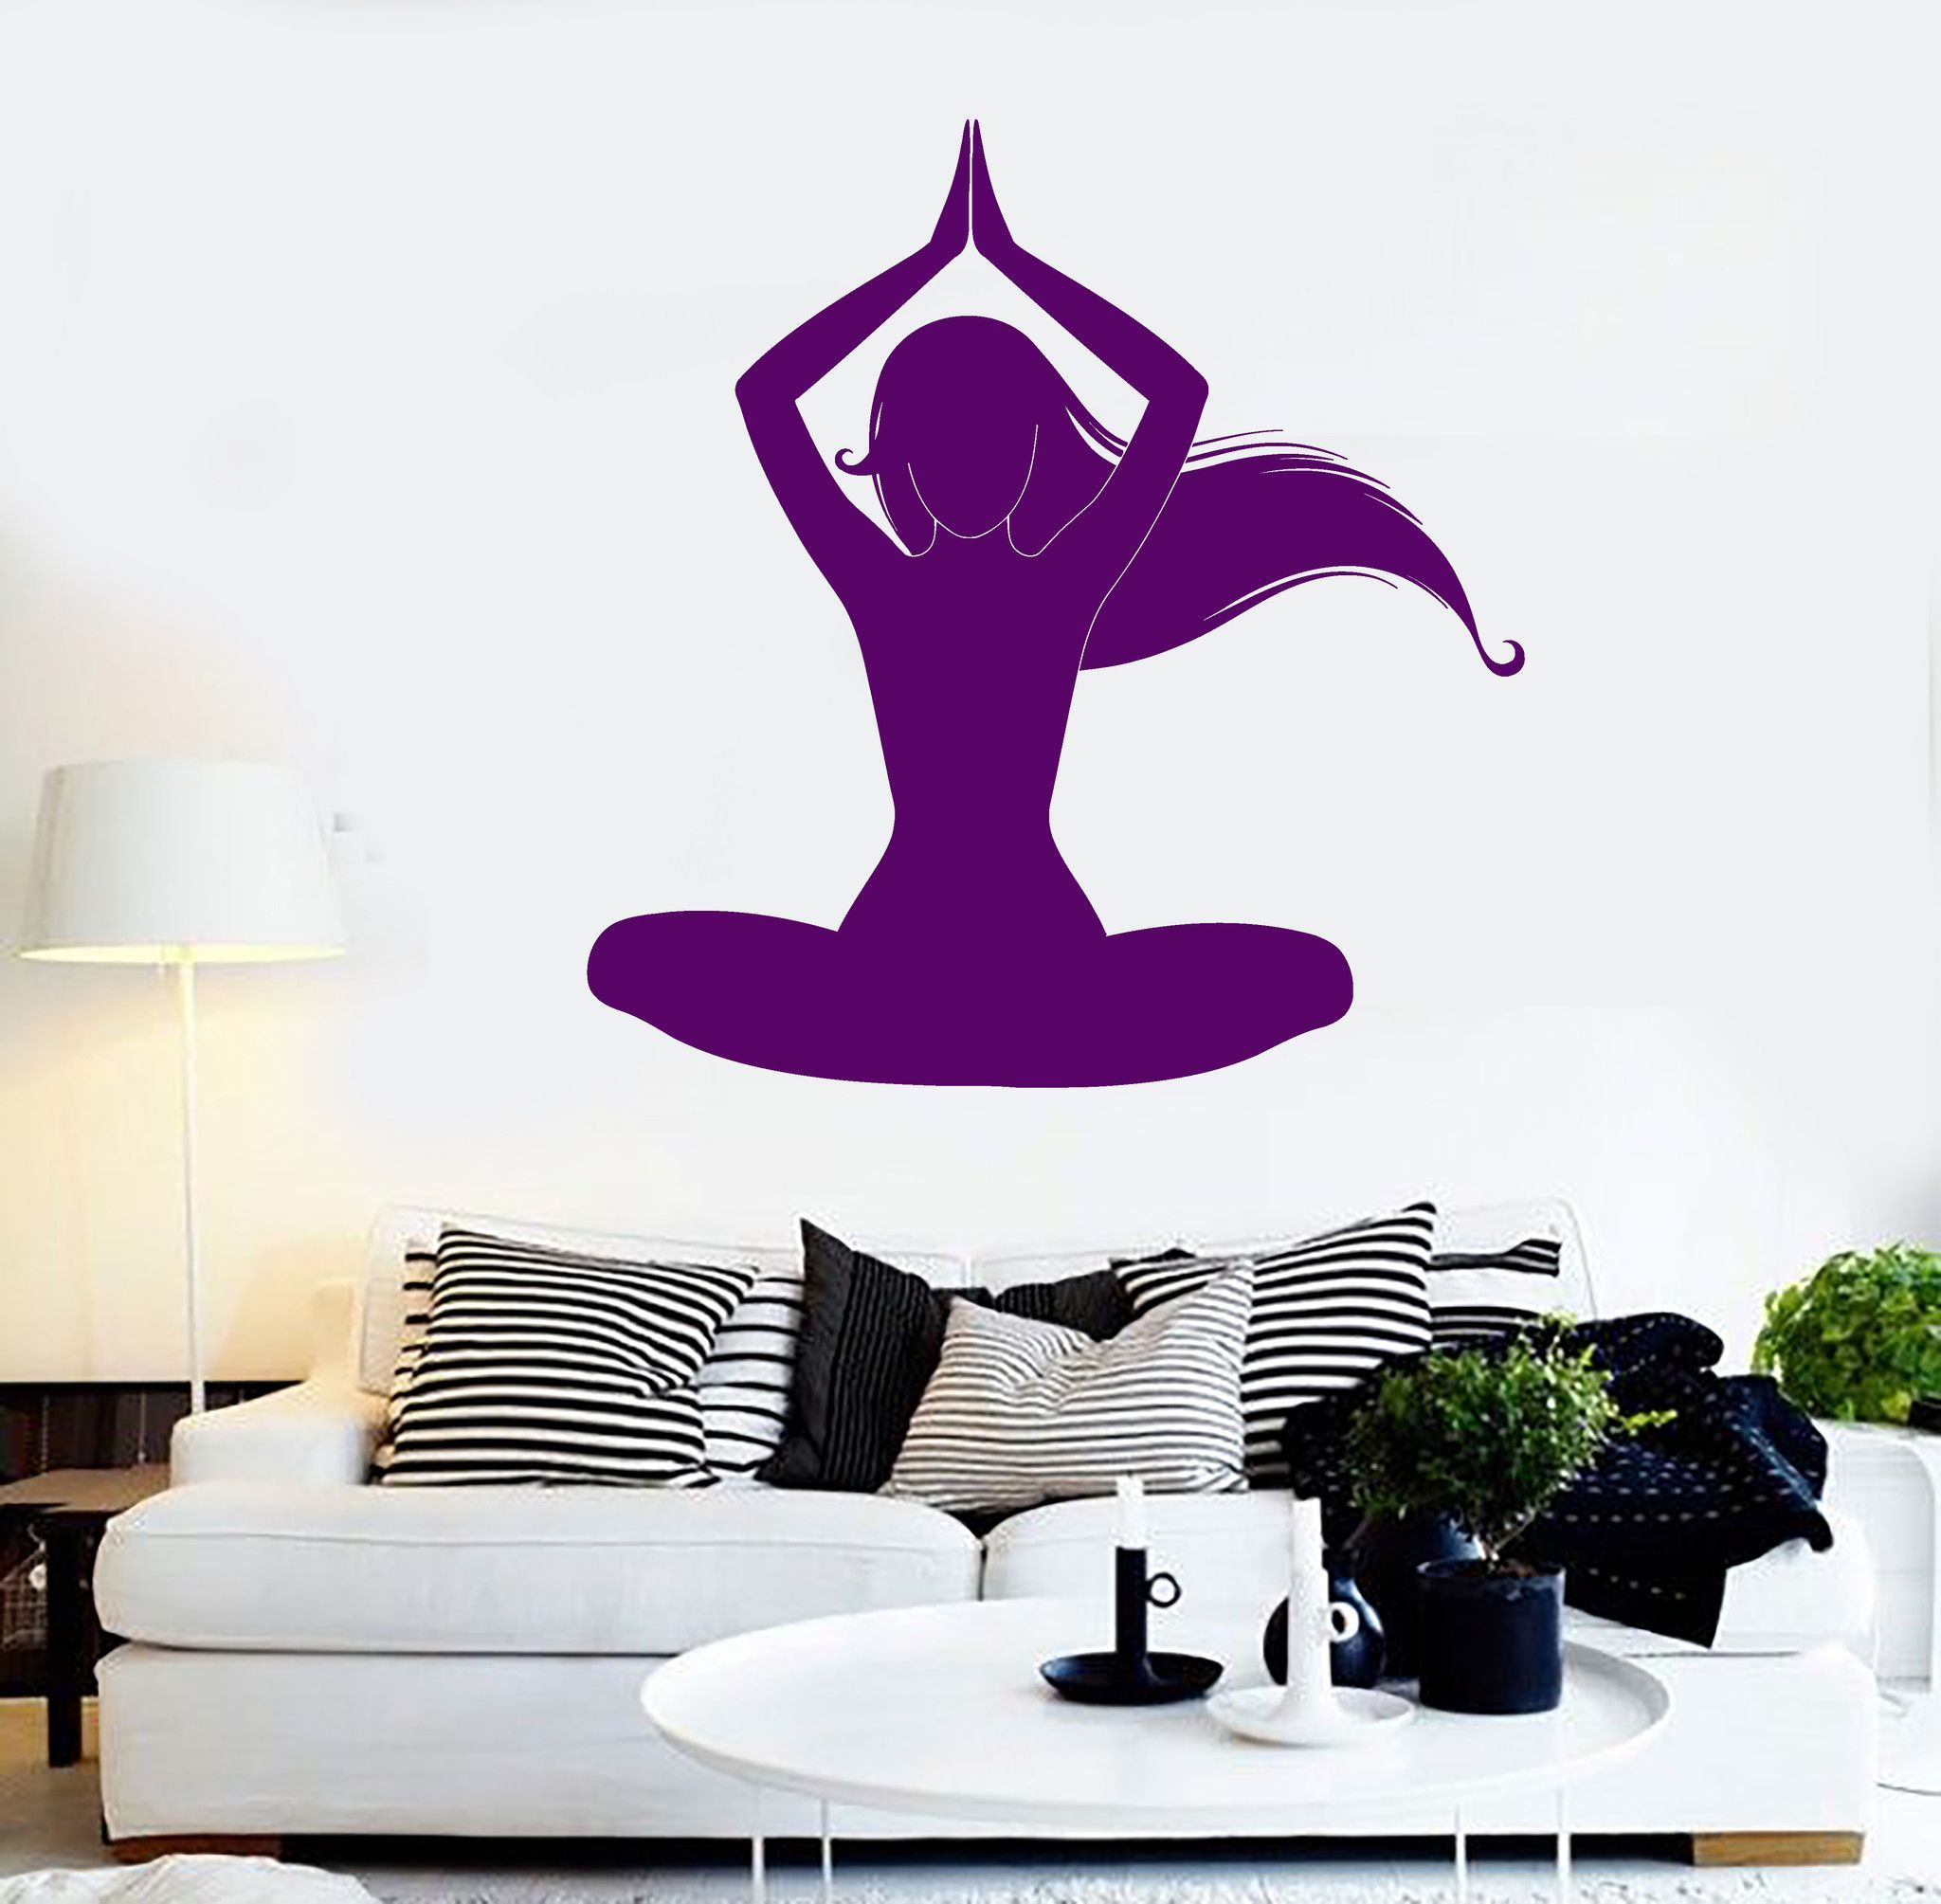 Vinyl Wall Decal Silhouette Meditation Woman Yoga Room Stickers - How to make vinyl wall decals with silhouette